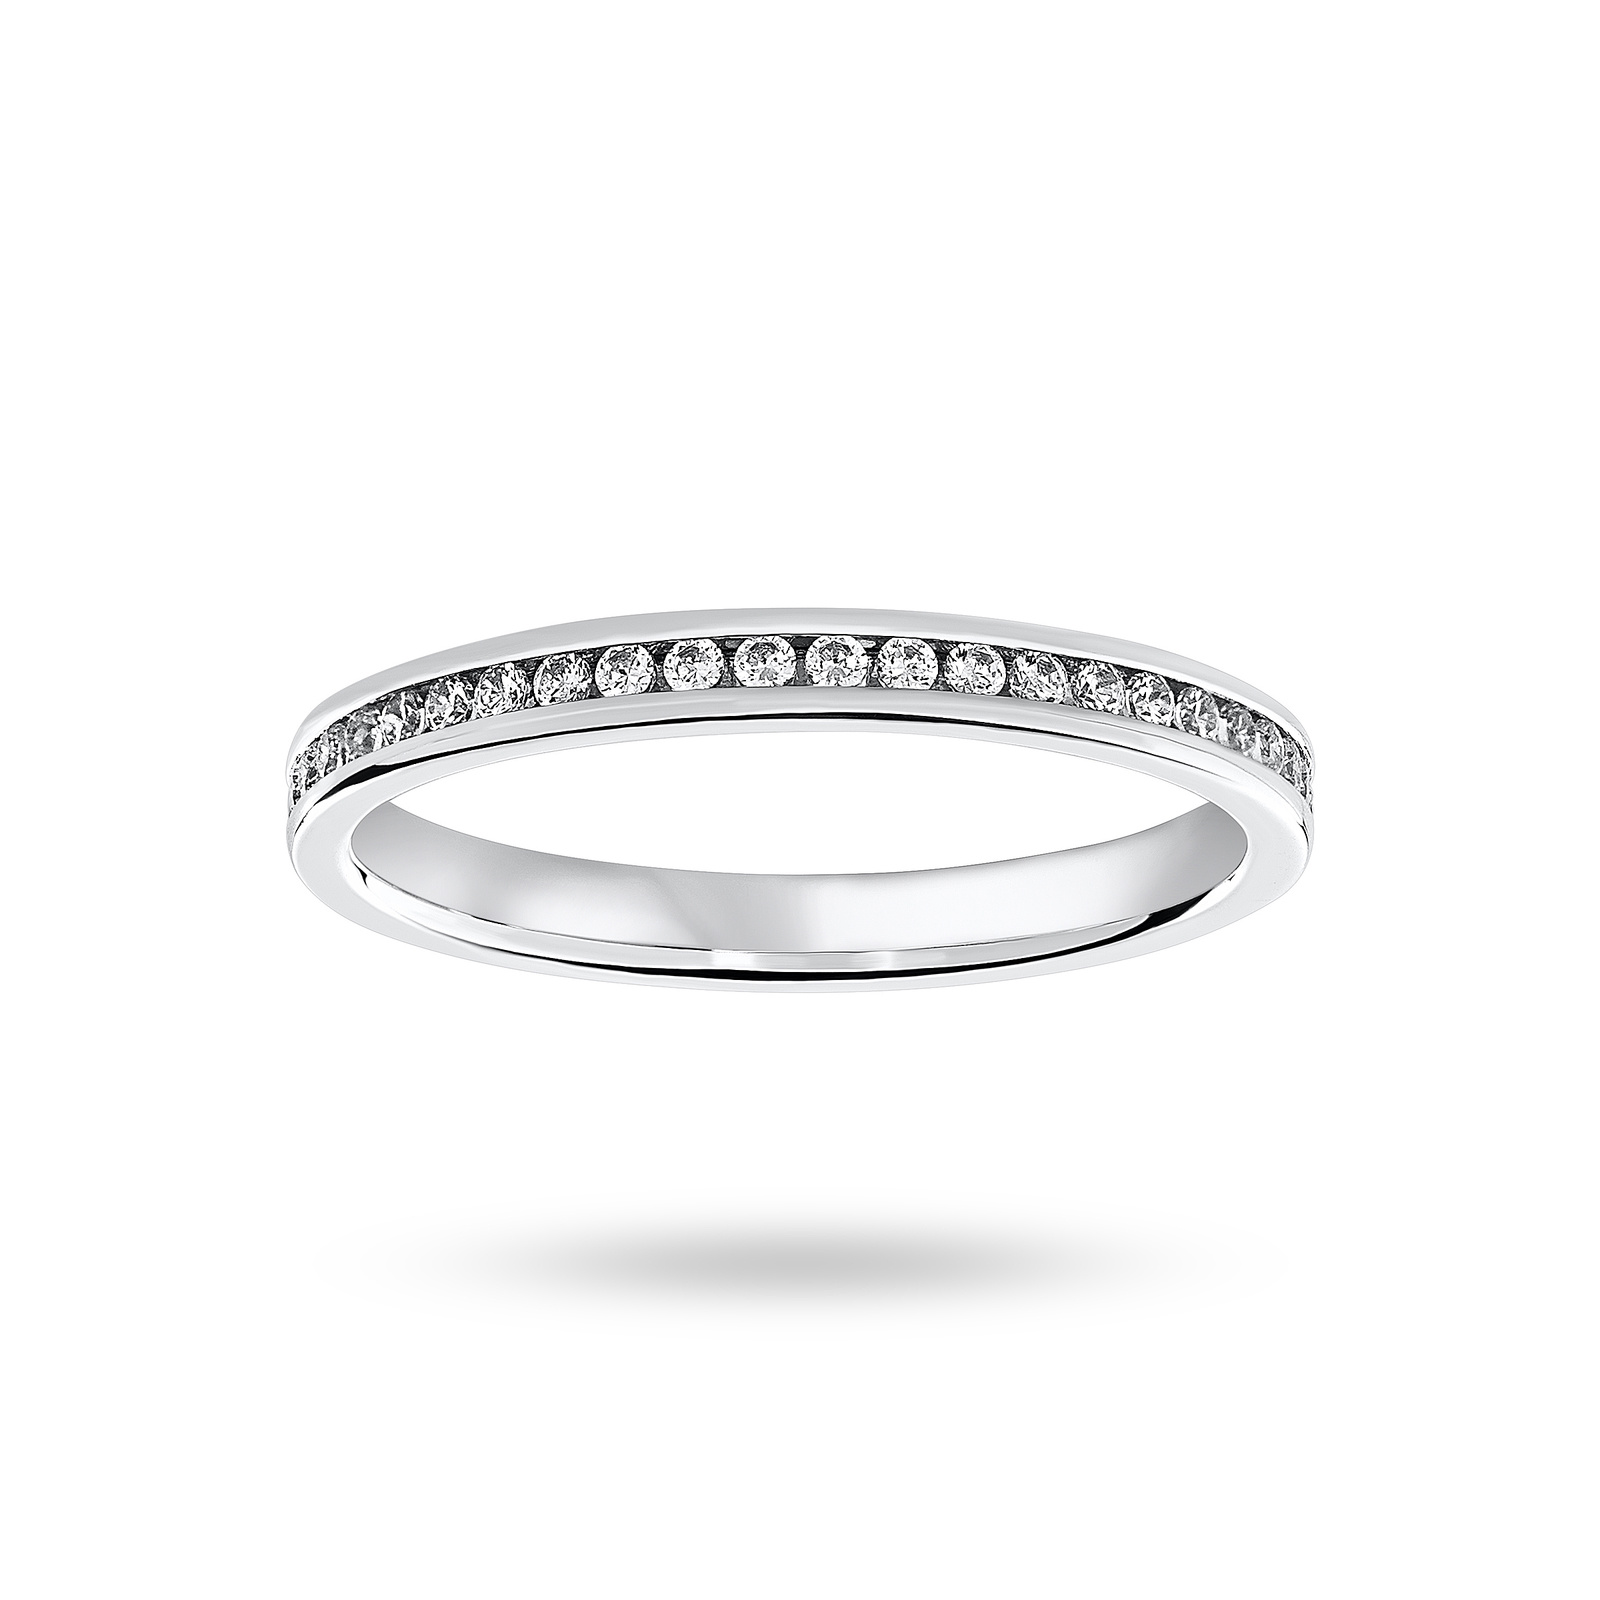 Platinum 0.33cttw Diamond Full Eternity Ring